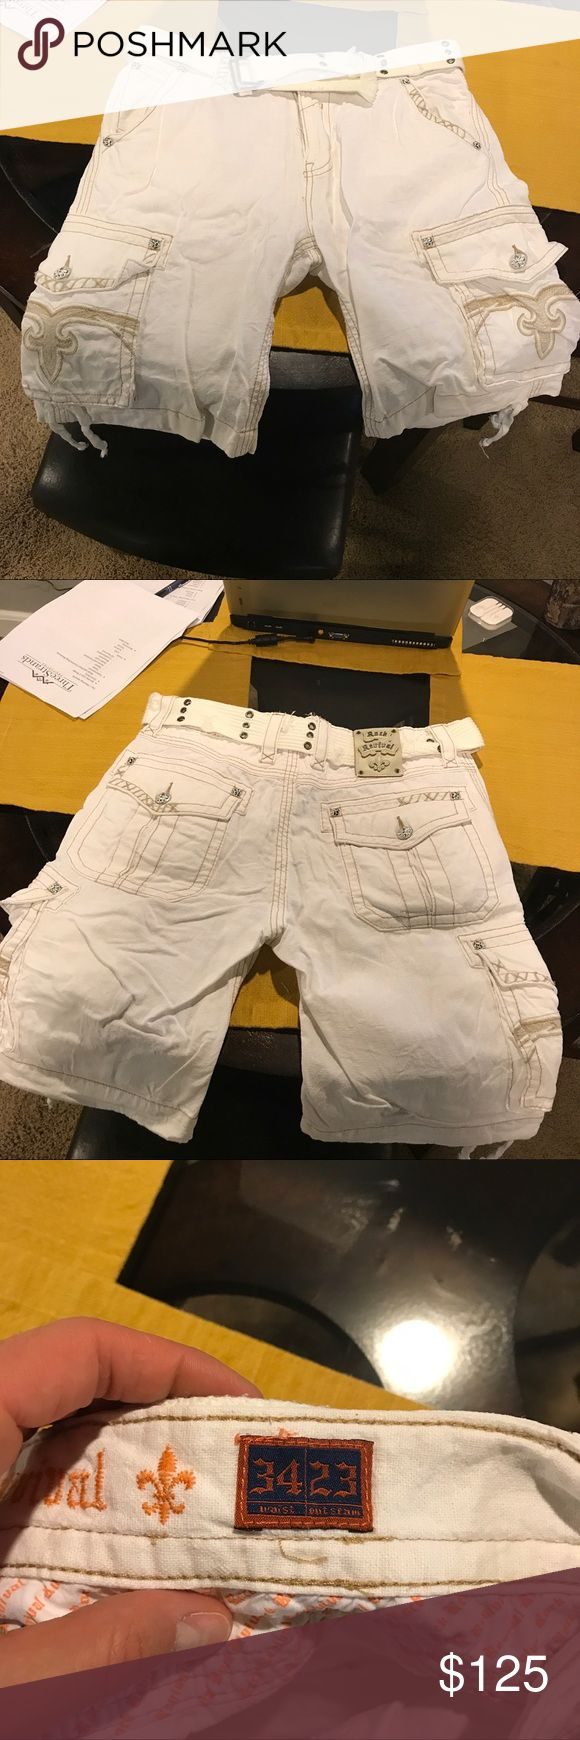 Men's size 34 waist white Rock Revival Shorts Men's waist size 34 outseam 23 white Rock Revival Shorts. Pretty much like brand new. Worn only a couple times. Comes with belt. Very light material and very comfortable stylish Shorts. Rock Revival Shorts Cargos